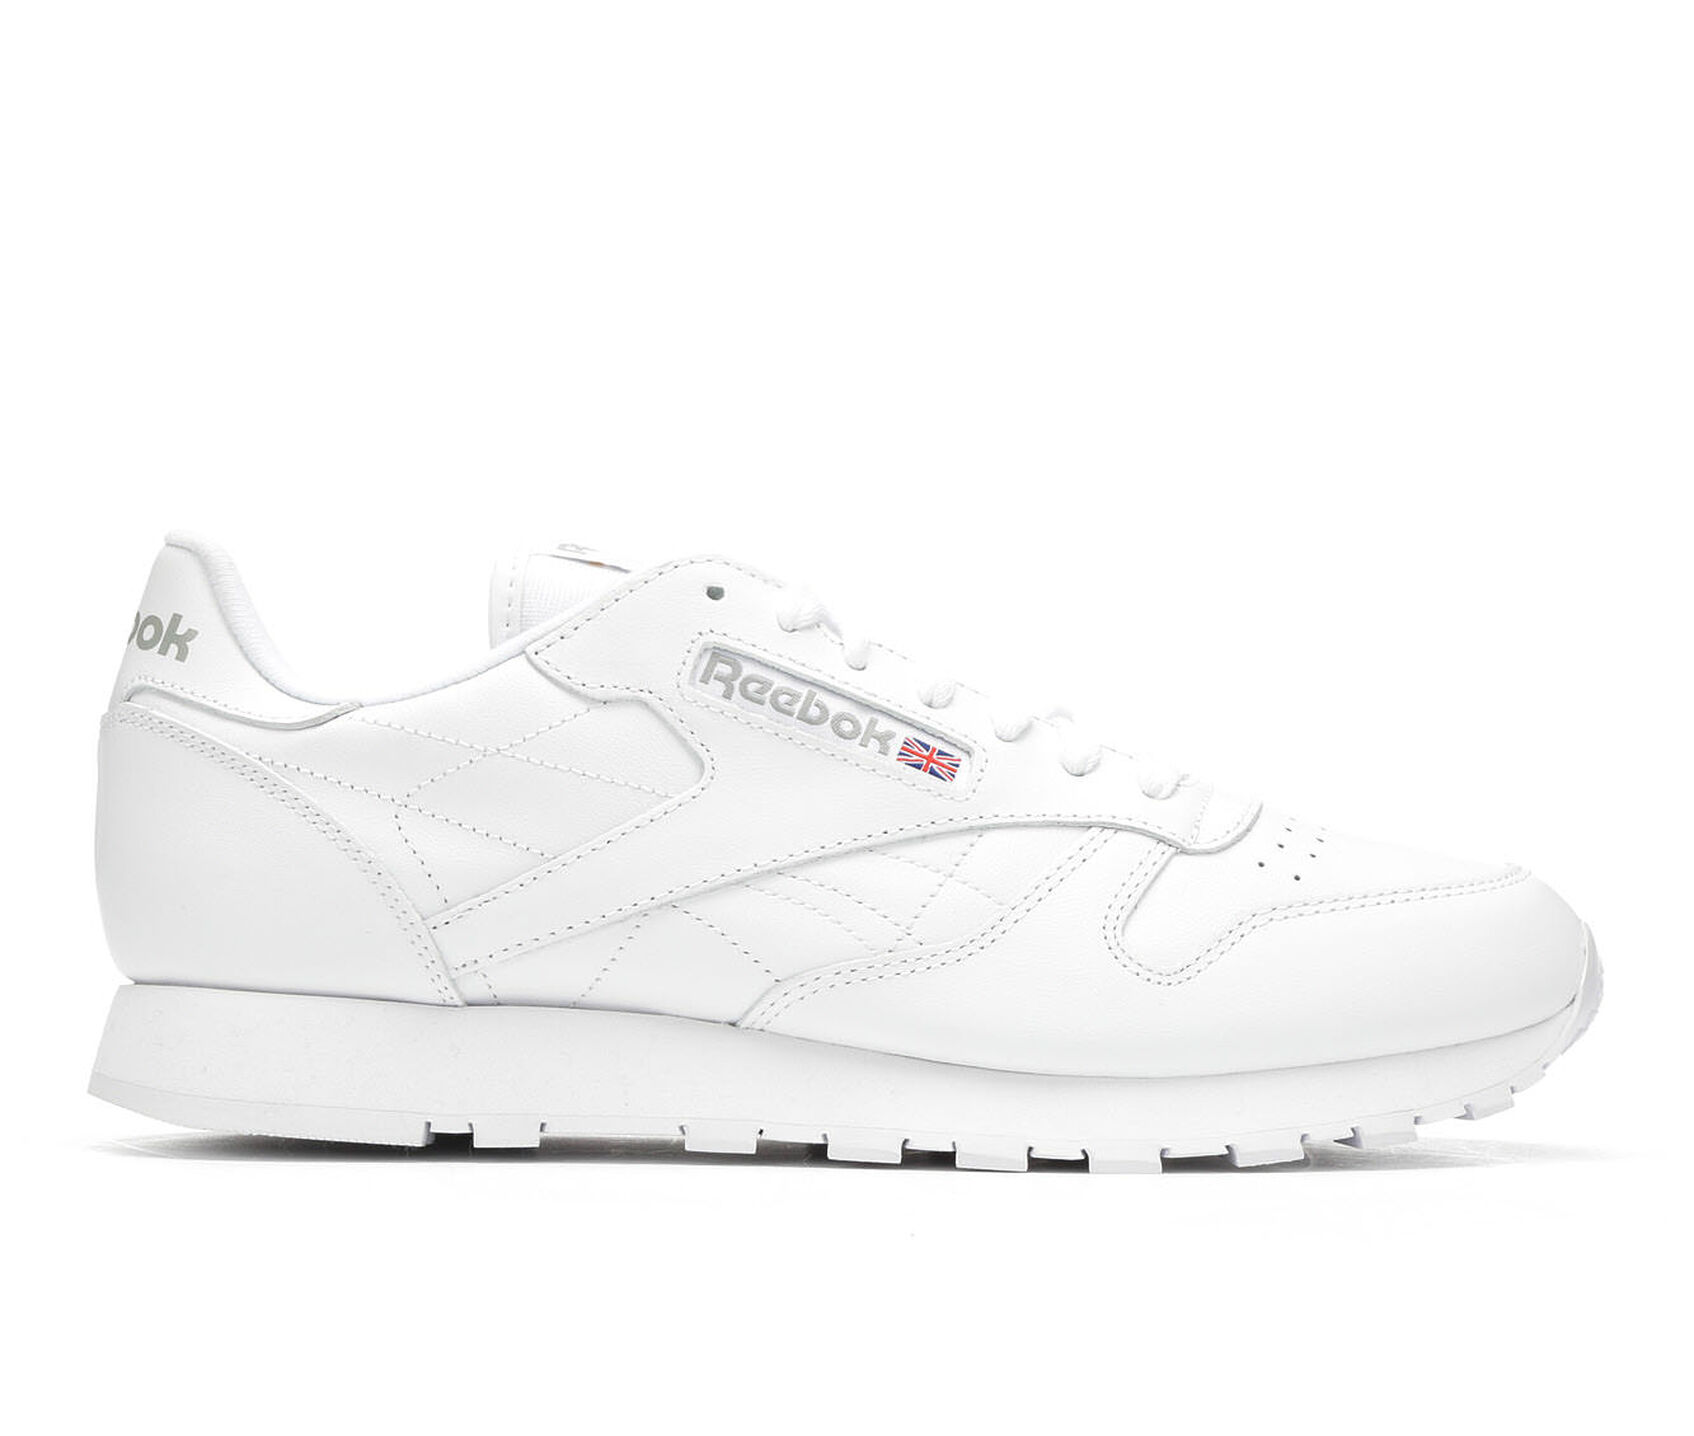 484f45ba5a5ff0 ... Reebok Classic Leather Retro Sneakers. Previous